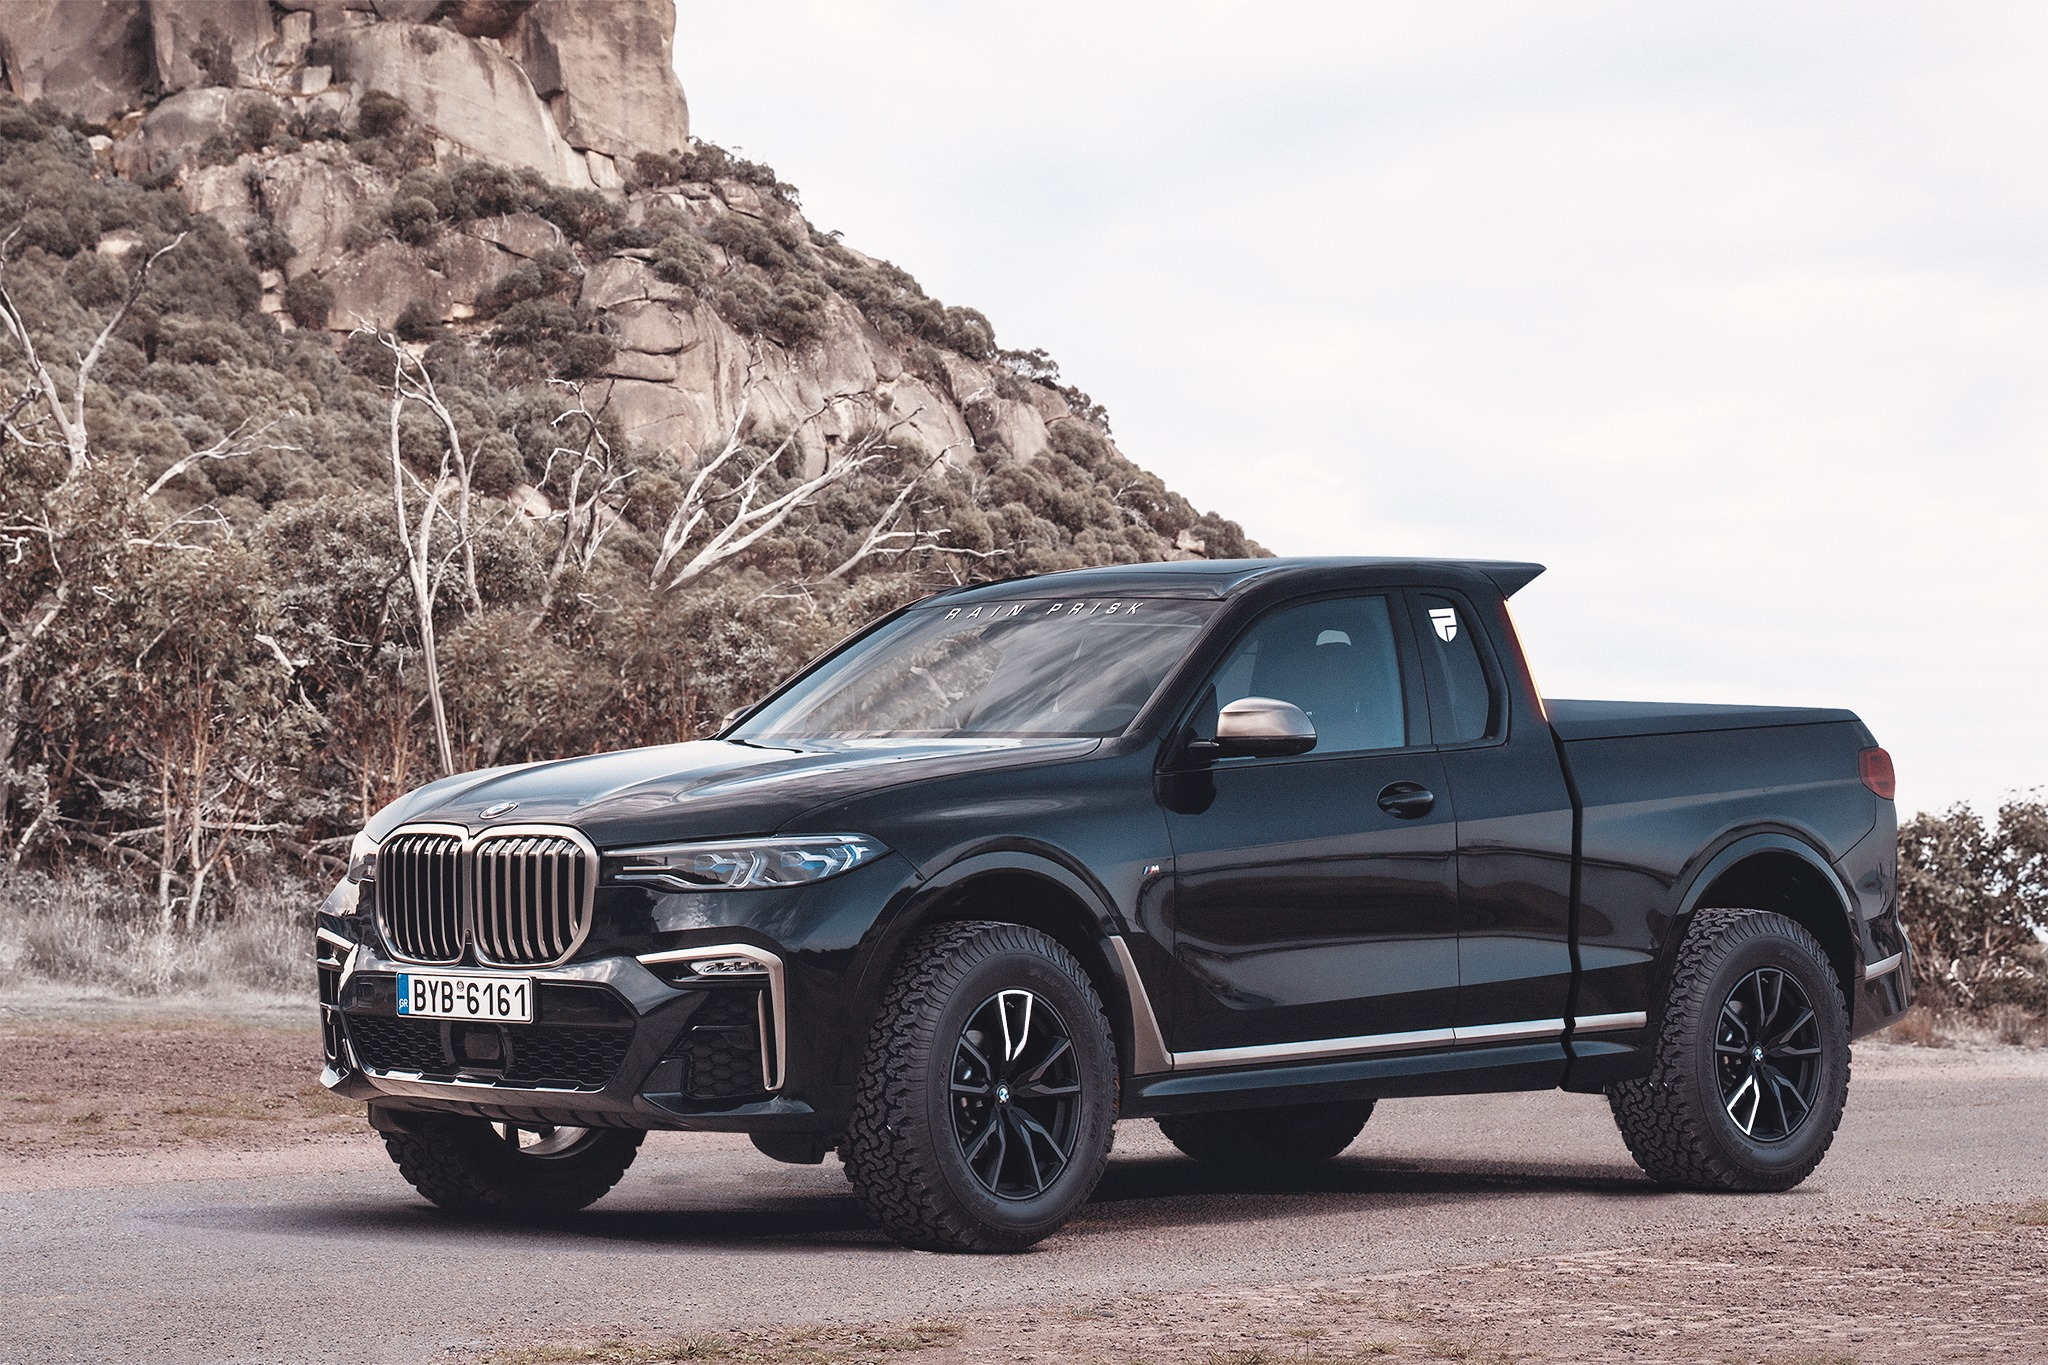 Bmw Could Have Made The X7 Pickup Much More Rugged Like This